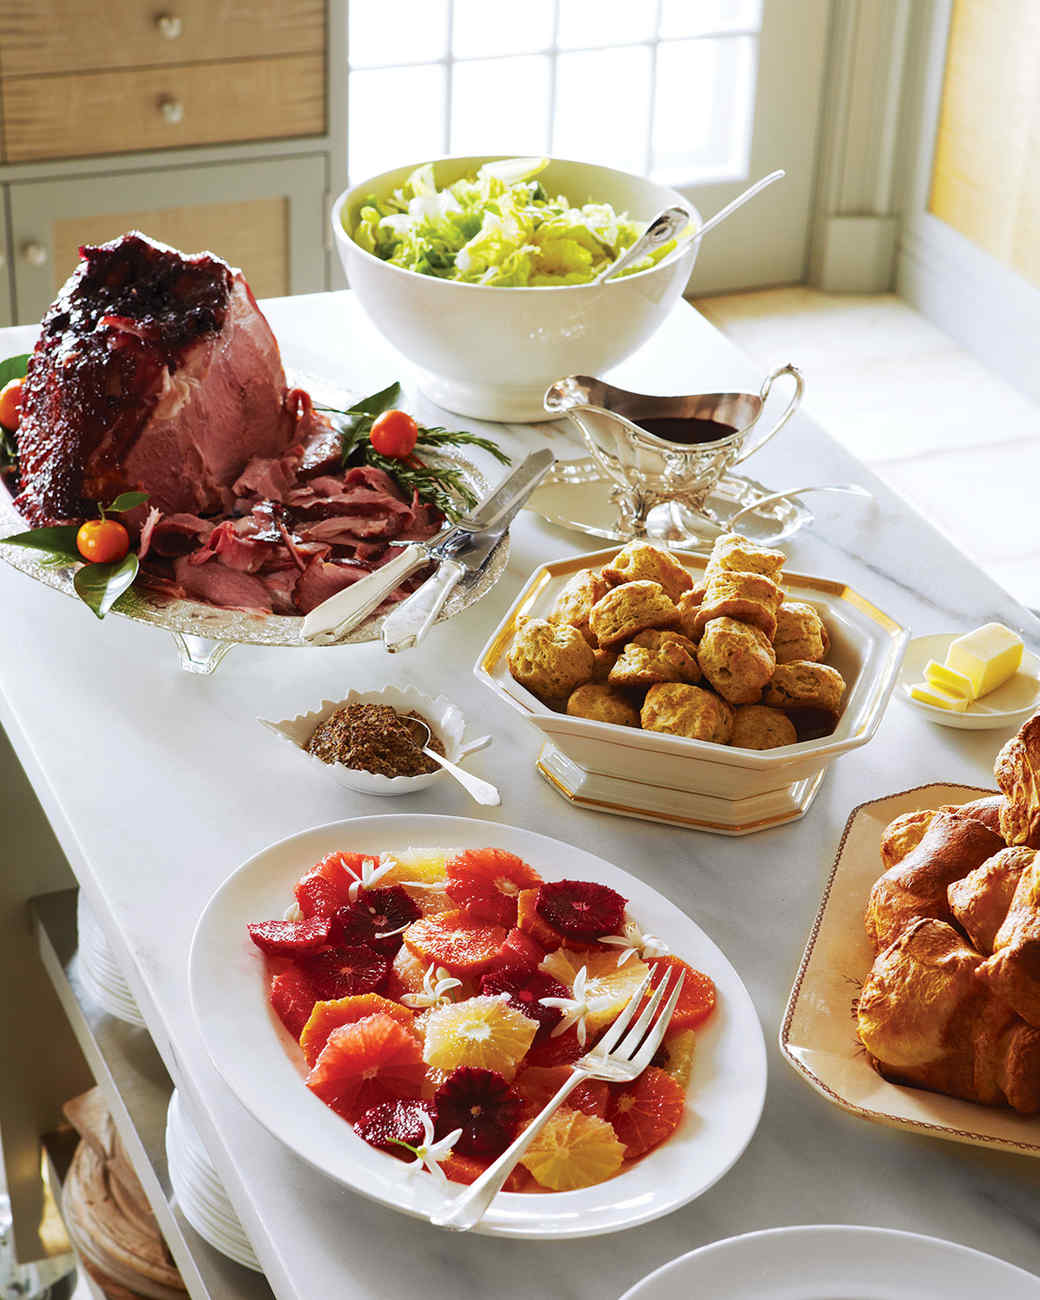 Lingonberry Jam Easter Ham Recipes: To Glaze Or Not To Glaze, That Is The